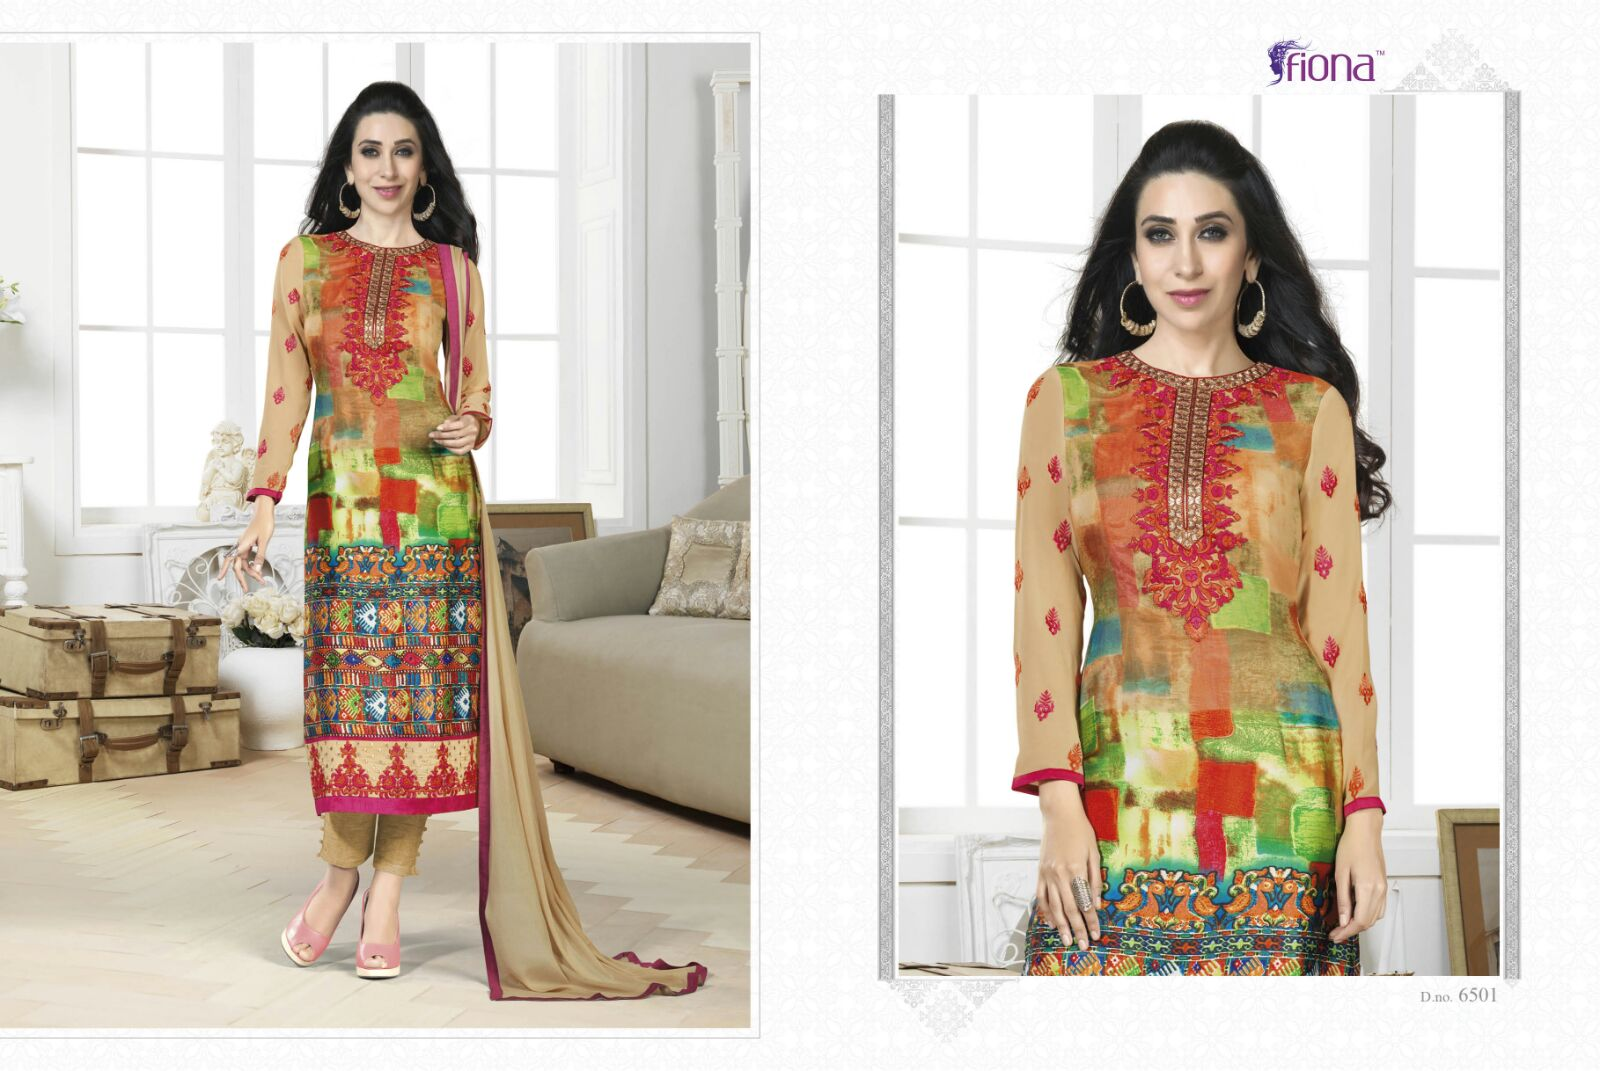 Fiona Ki Style – Buy online Wholesale Latest Half Georgette and Half Satin Style Suit